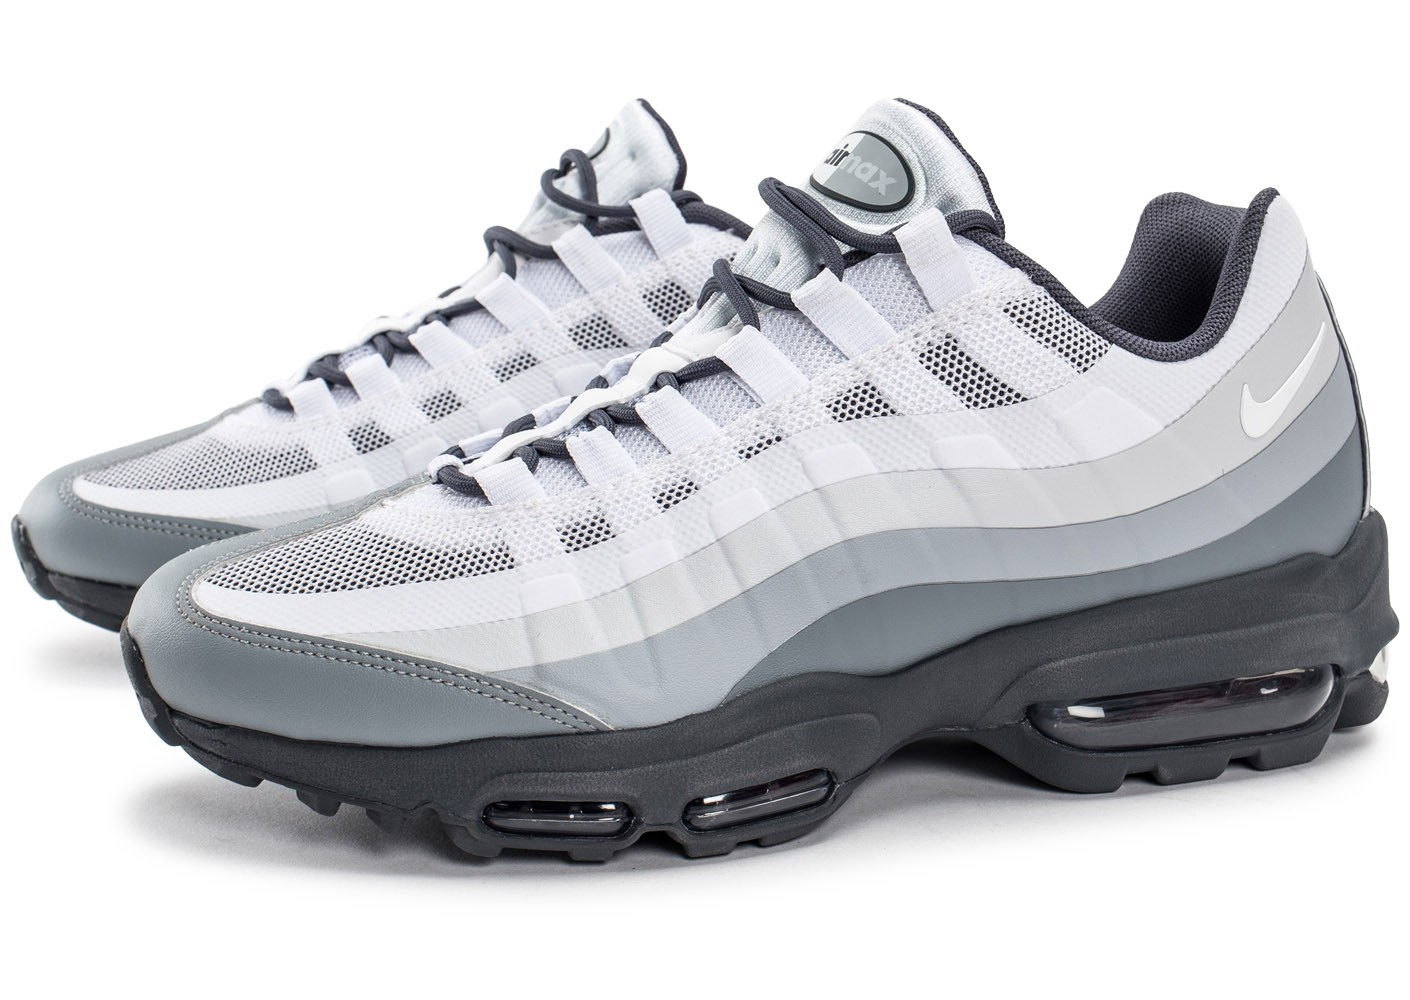 Nike Air Max 95 Ultra Essential blanche et grise - Chaussures ...